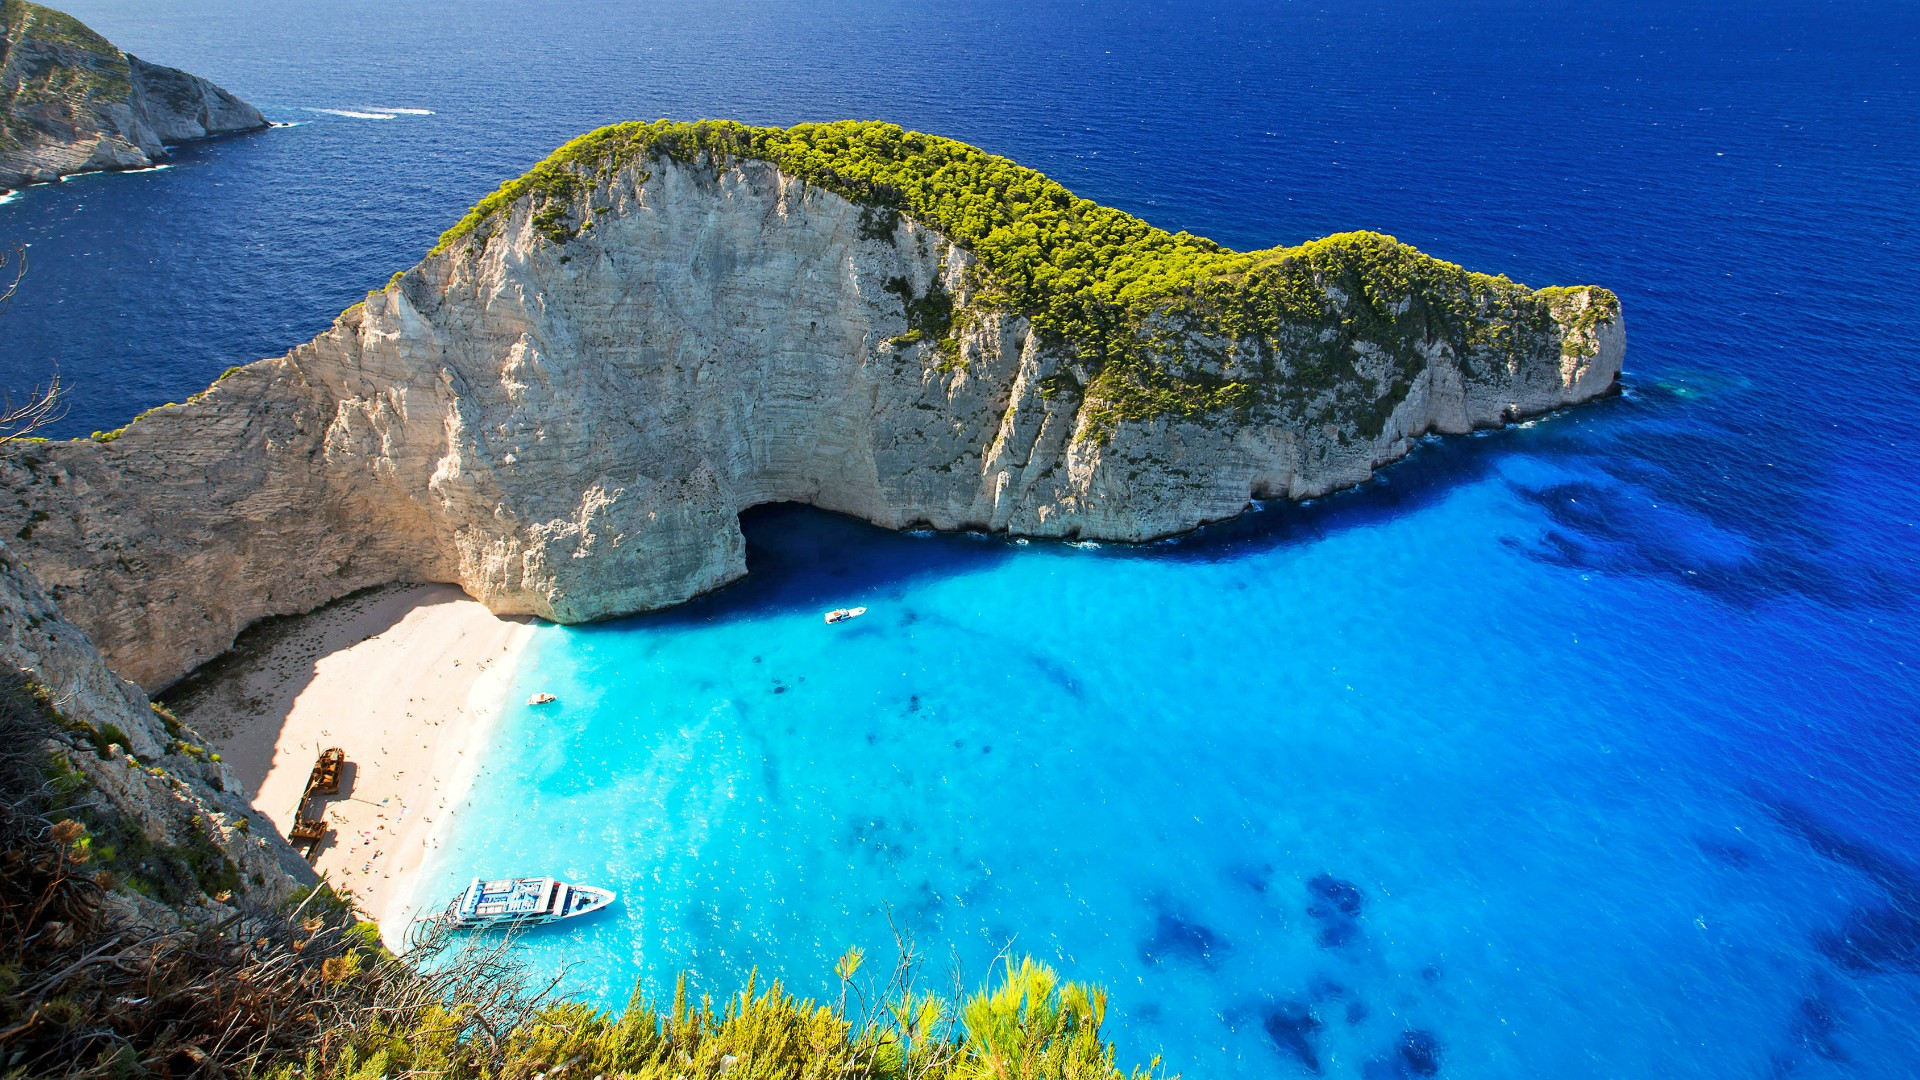 Top 10 most famous beaches in the world